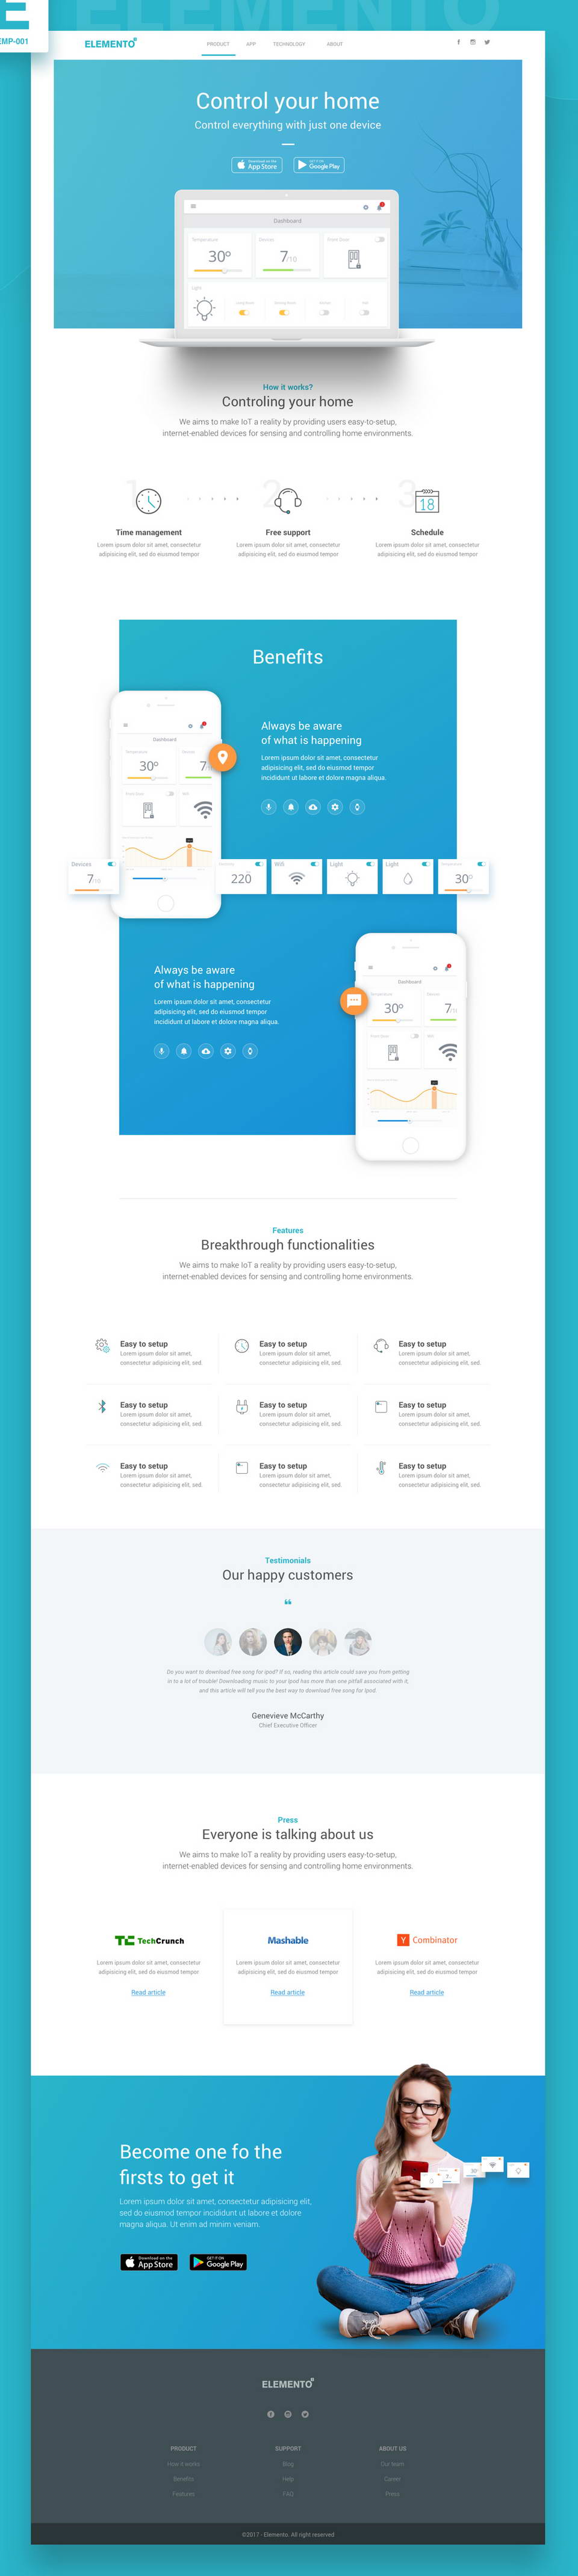 Elemento Startup Web Template Pinspiry - What is web template